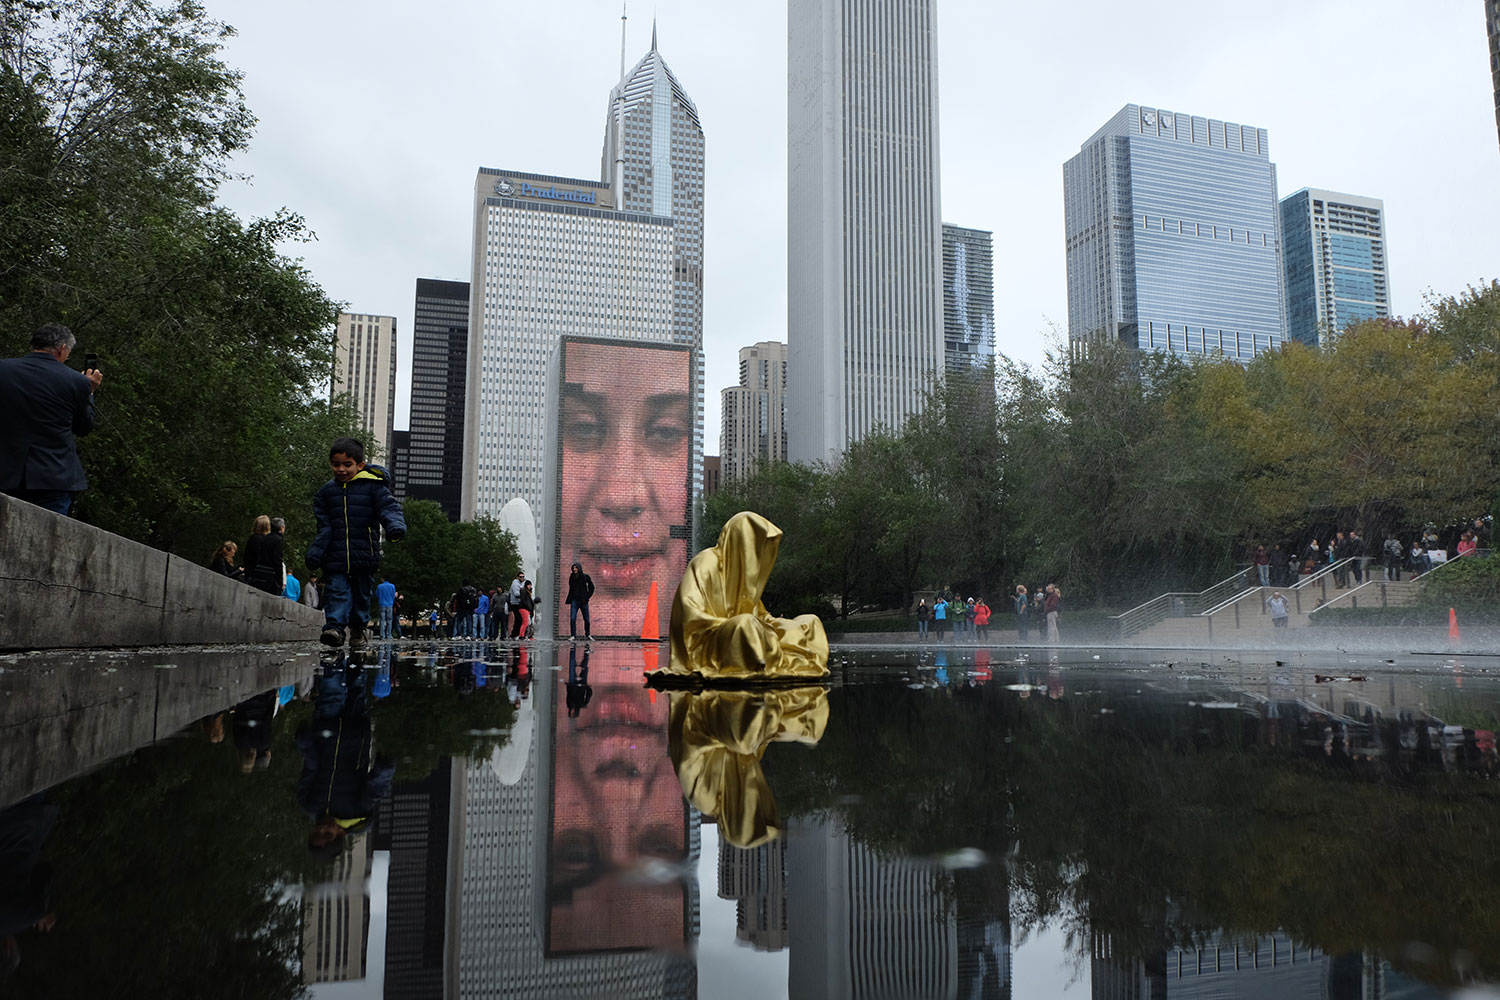 chicago-millenium-park-usa-contemporary-art-arts-sculpture-public-design-photography-guardians-of-time-keeper-manfred-kili-kielnhofer-F8882